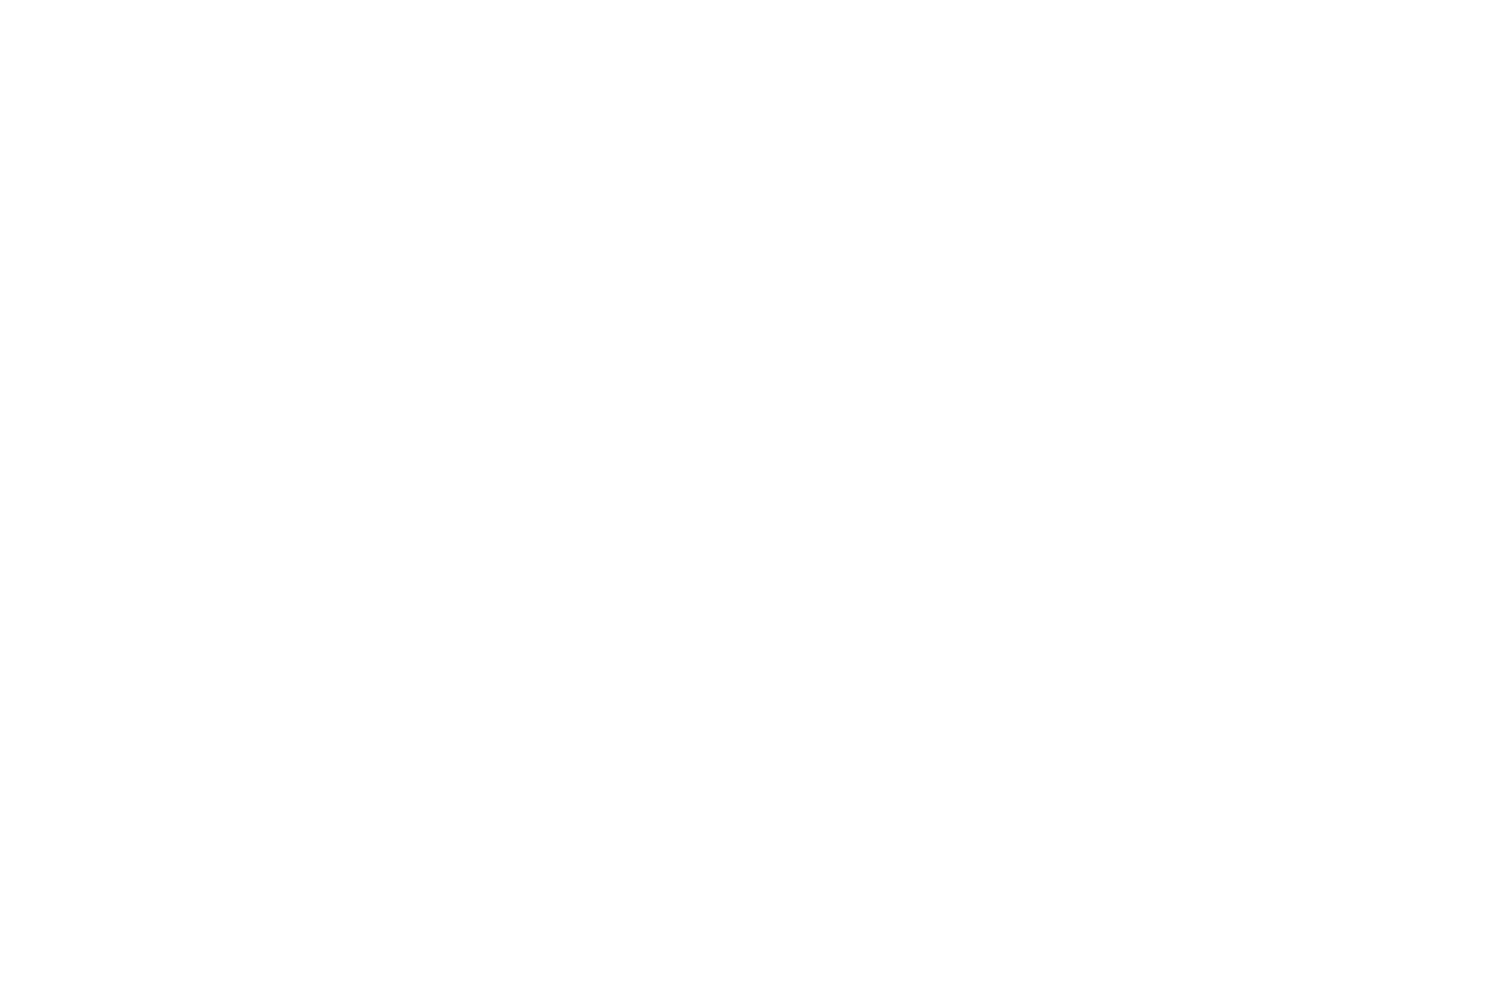 Natural by Tanja